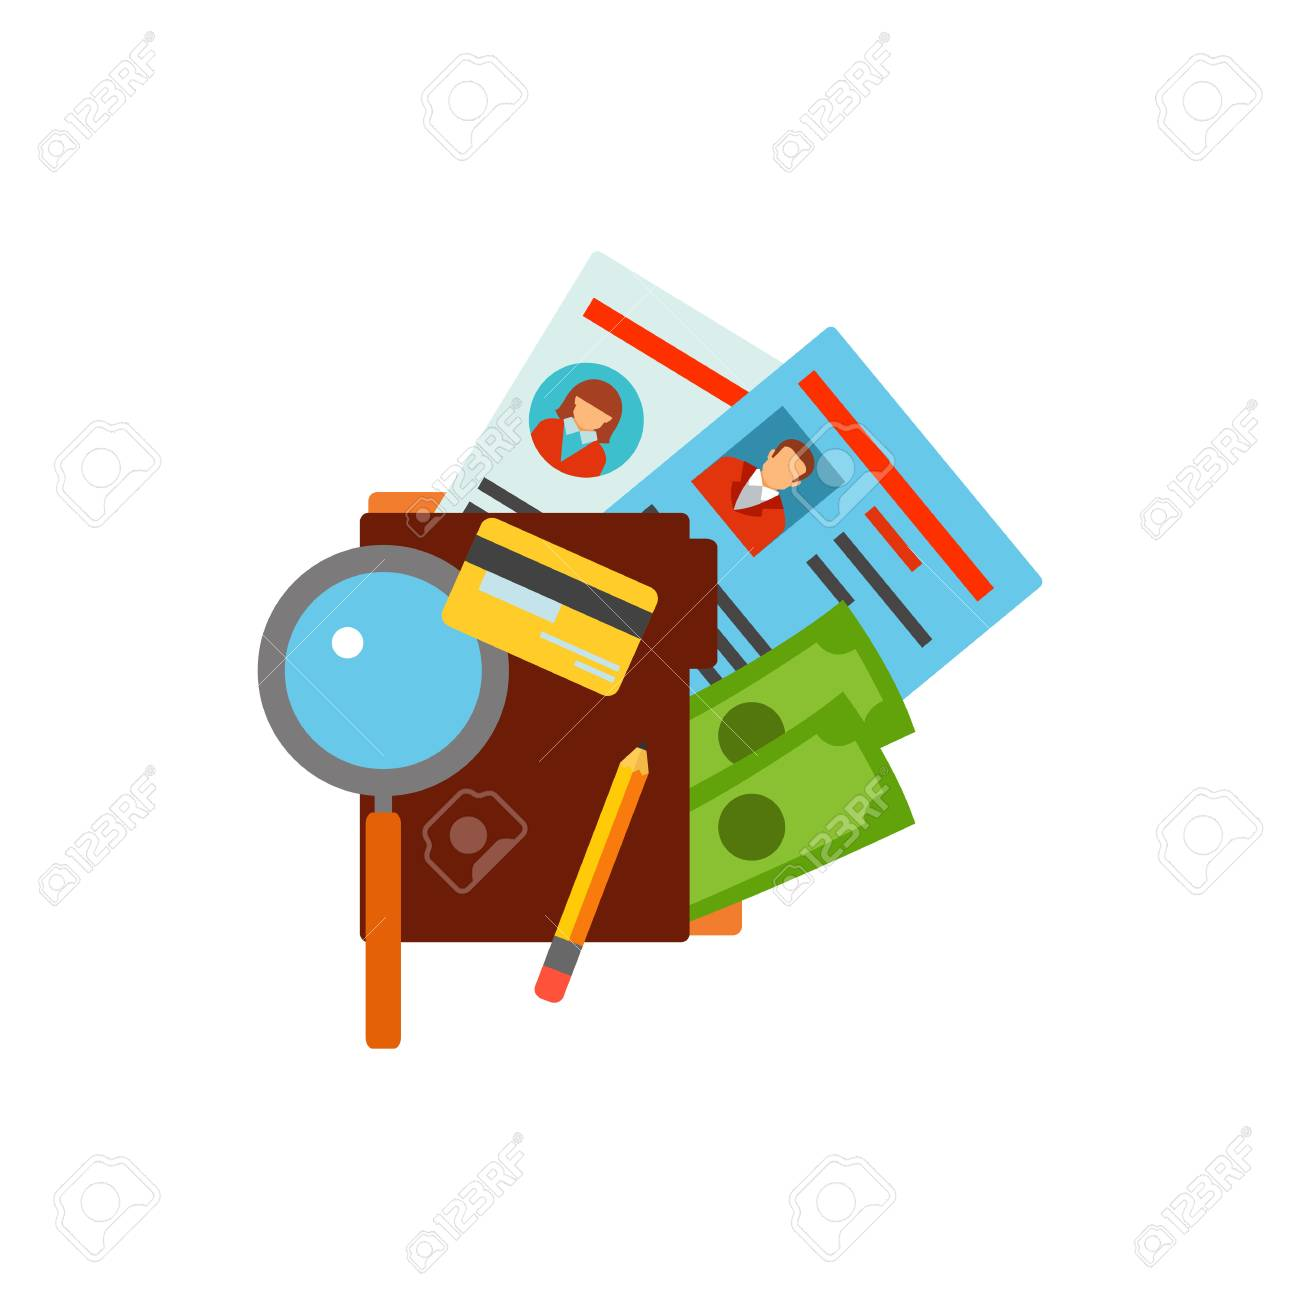 Icon of magnifying glass and folder with money credit card and icon of magnifying glass and folder with money credit card and records offshore company reheart Gallery